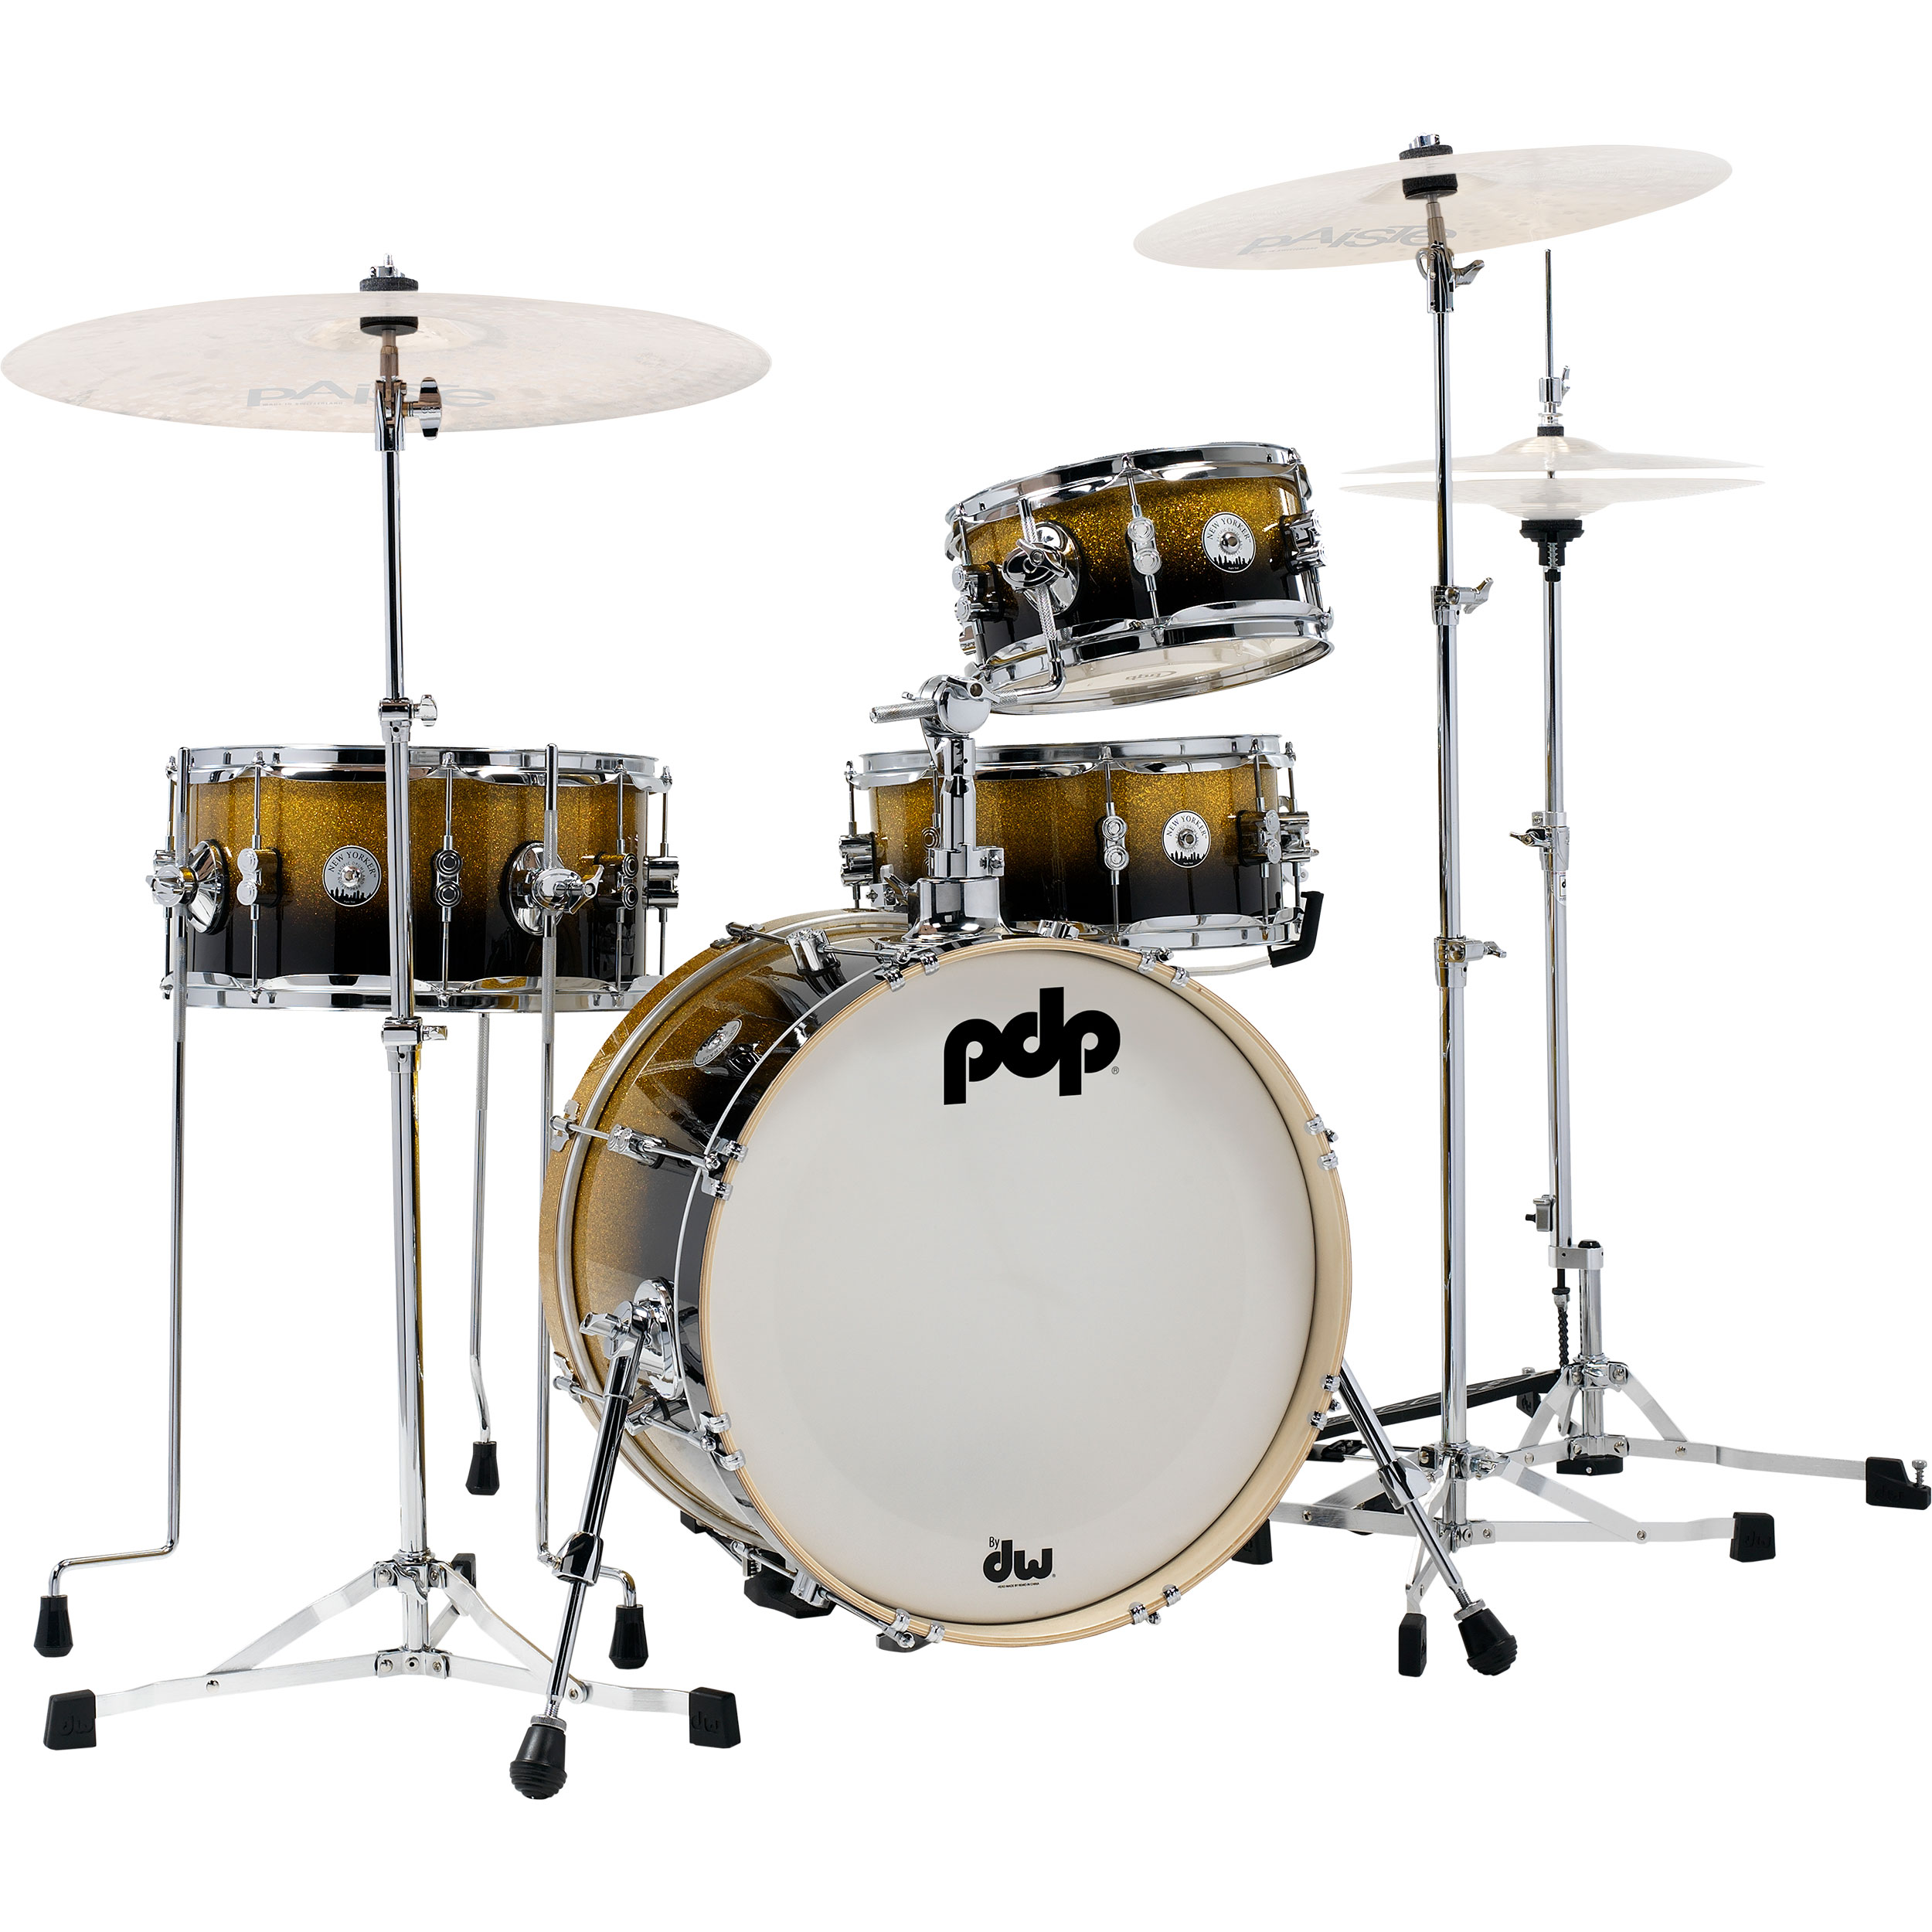 """PDP Daru Jones New Yorker Drum Set with DW 6000 Hardware Pack  & Bags (18"""" Bass, 10/14"""" Toms, 13"""" Snare)"""